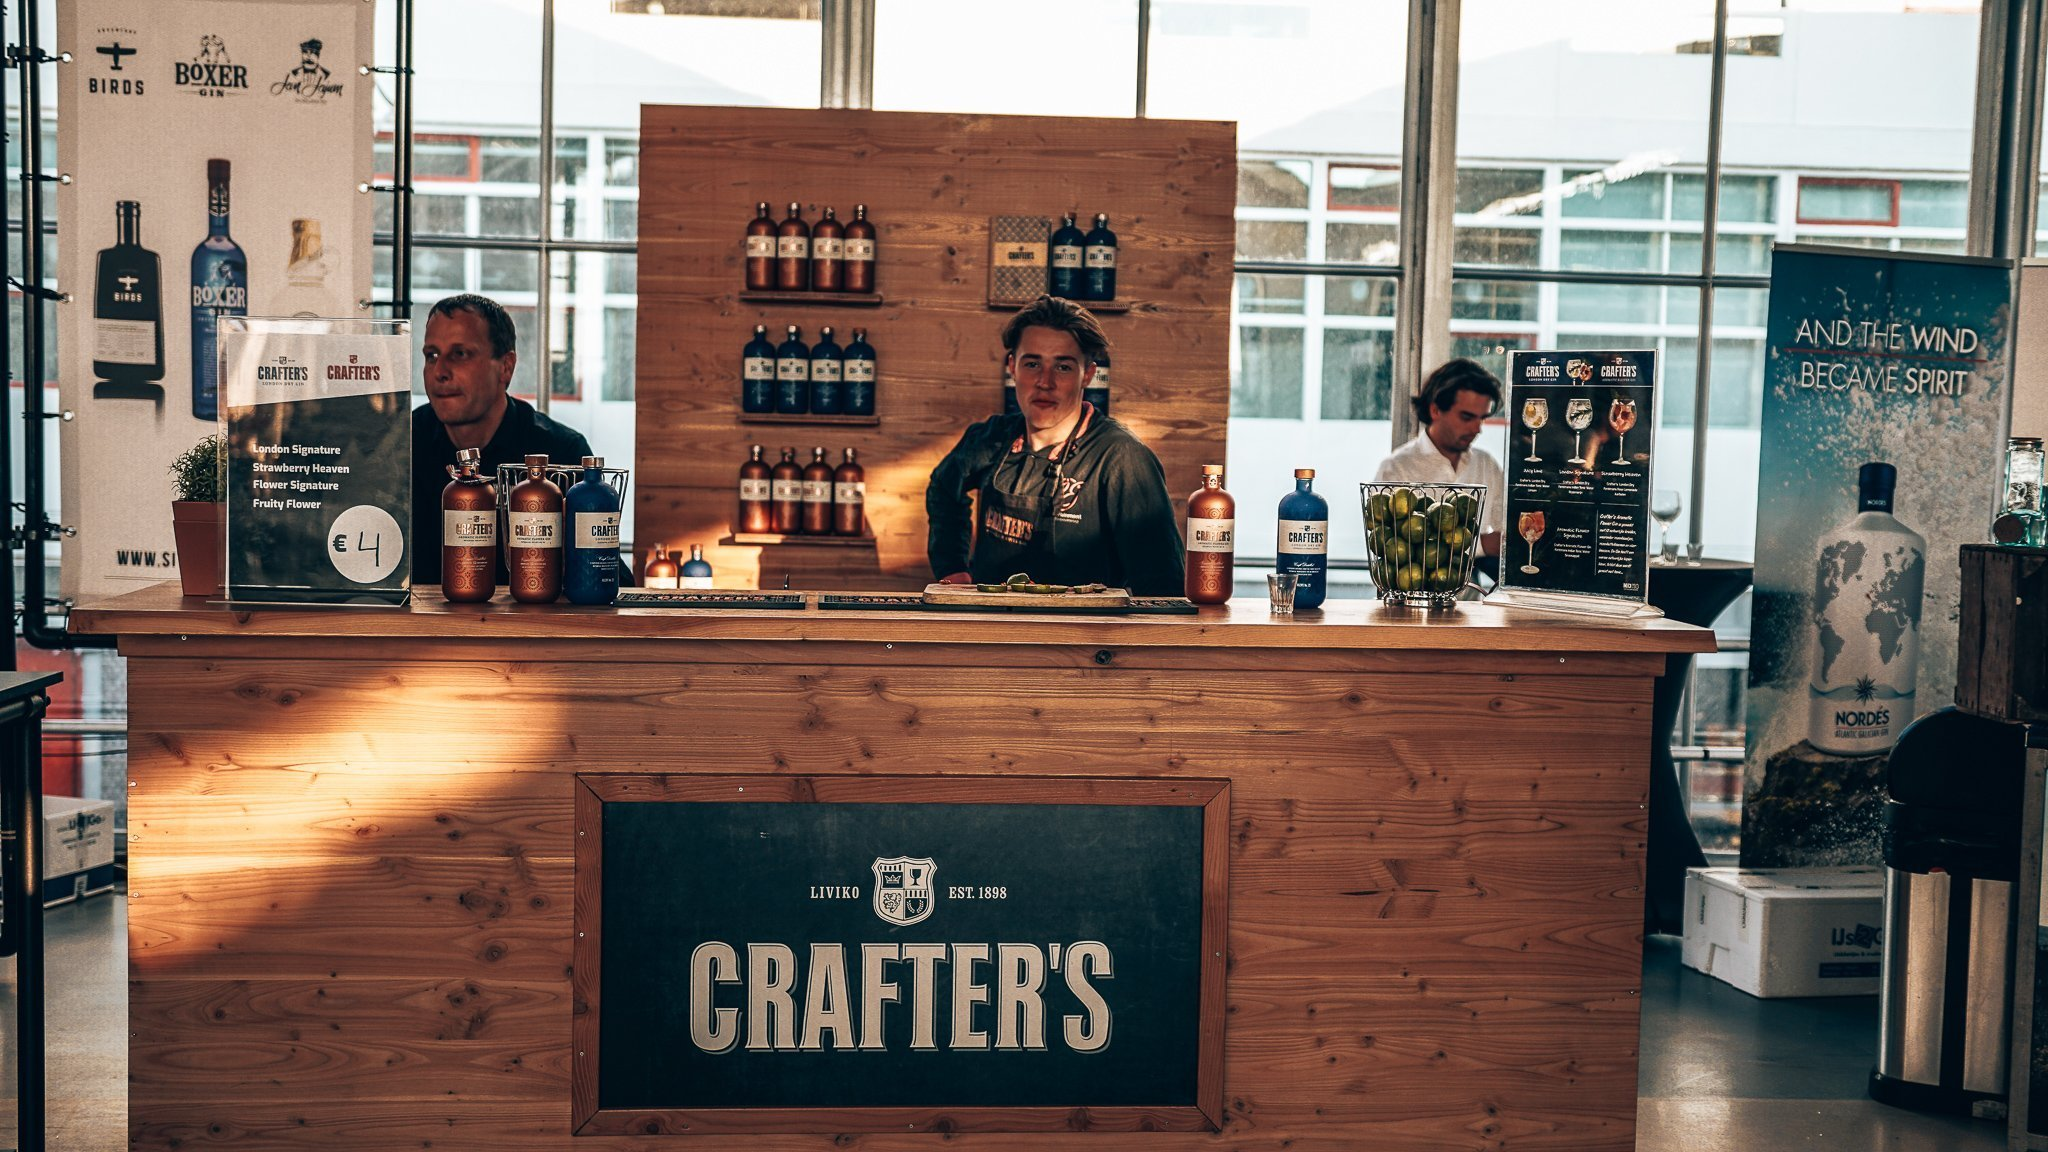 Crafter's Gin, Ginfestival Rotterdam, Alles over gin.